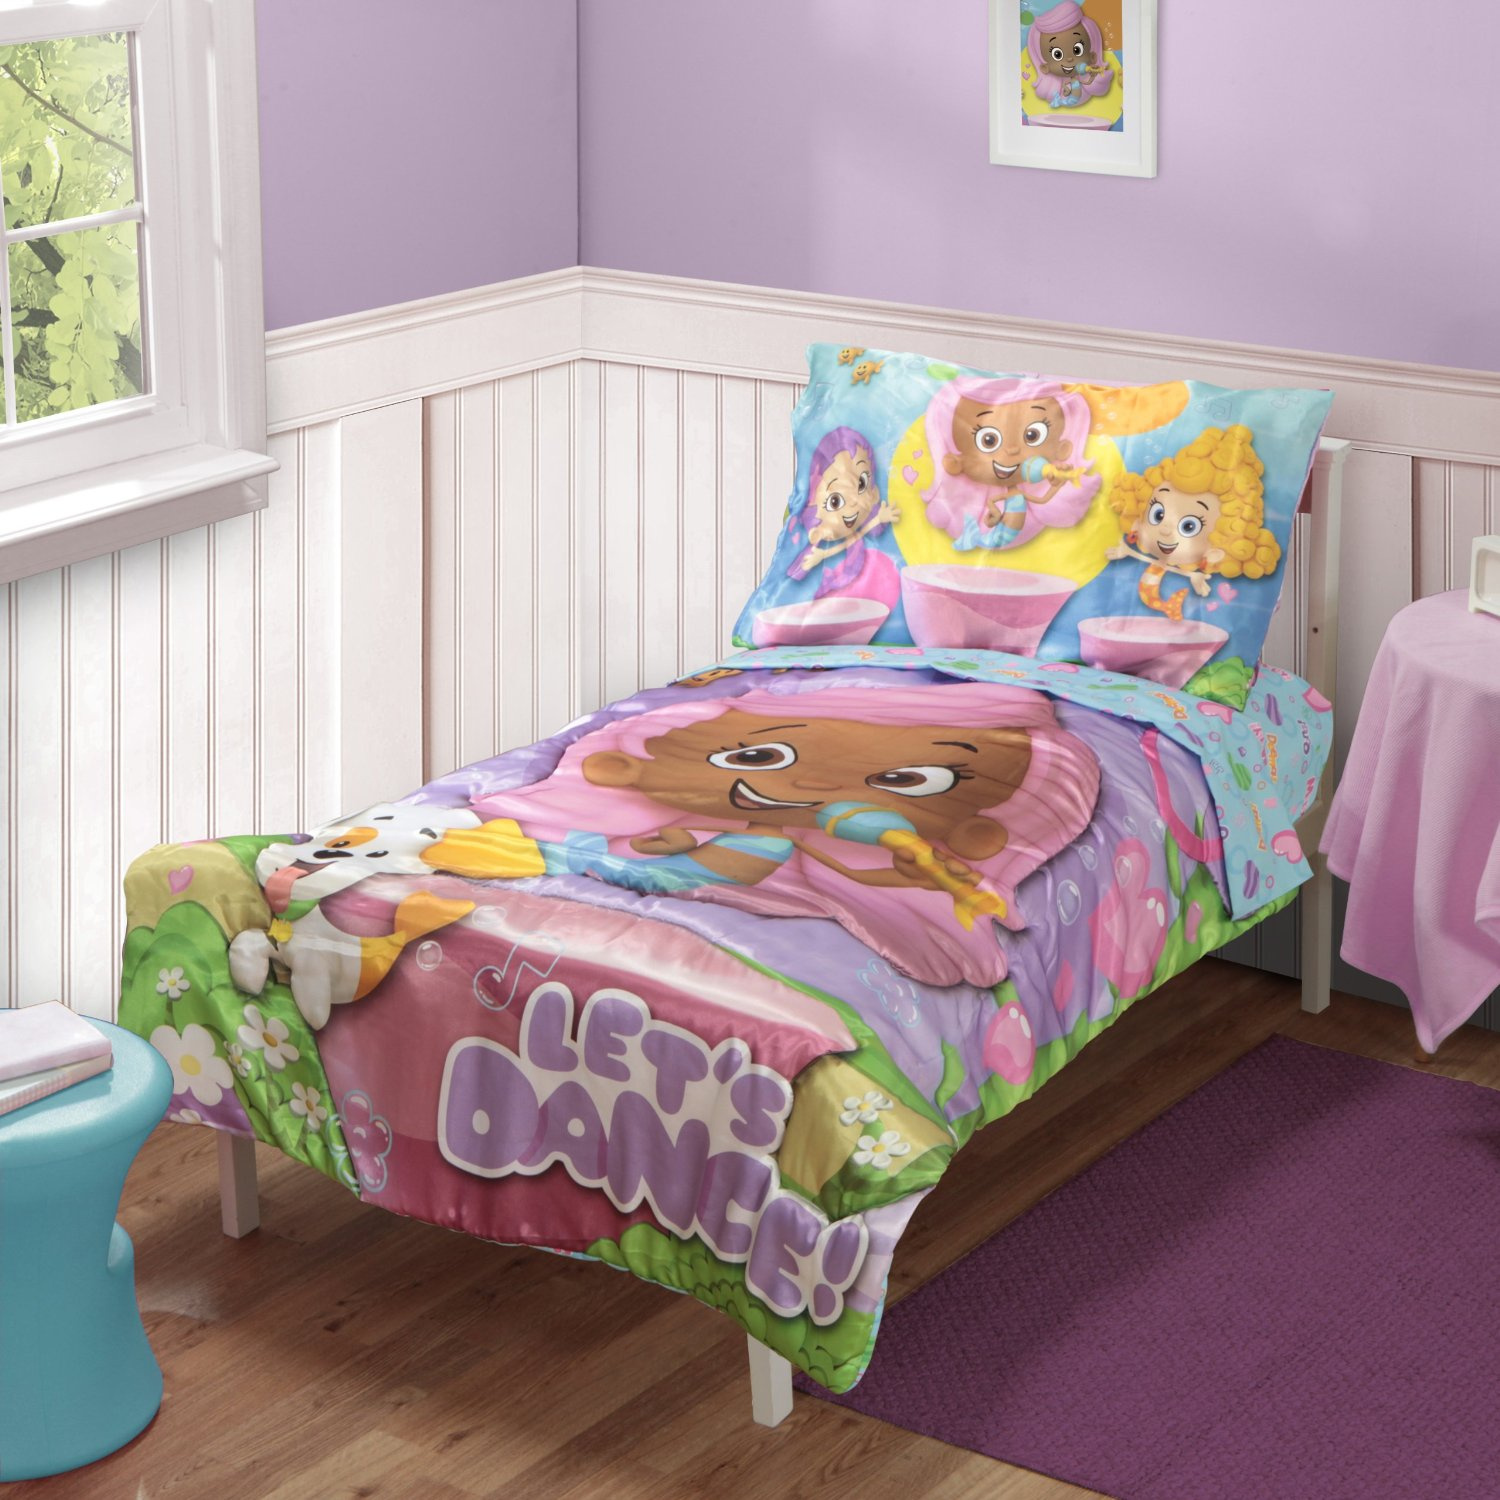 Beautiful graphics, soft fabrics and fun color combinations make these toddler bedding sets ideal for any toddler's room. The set includes: one comforter, one top flat sheet, one fitted bottom sheet p.